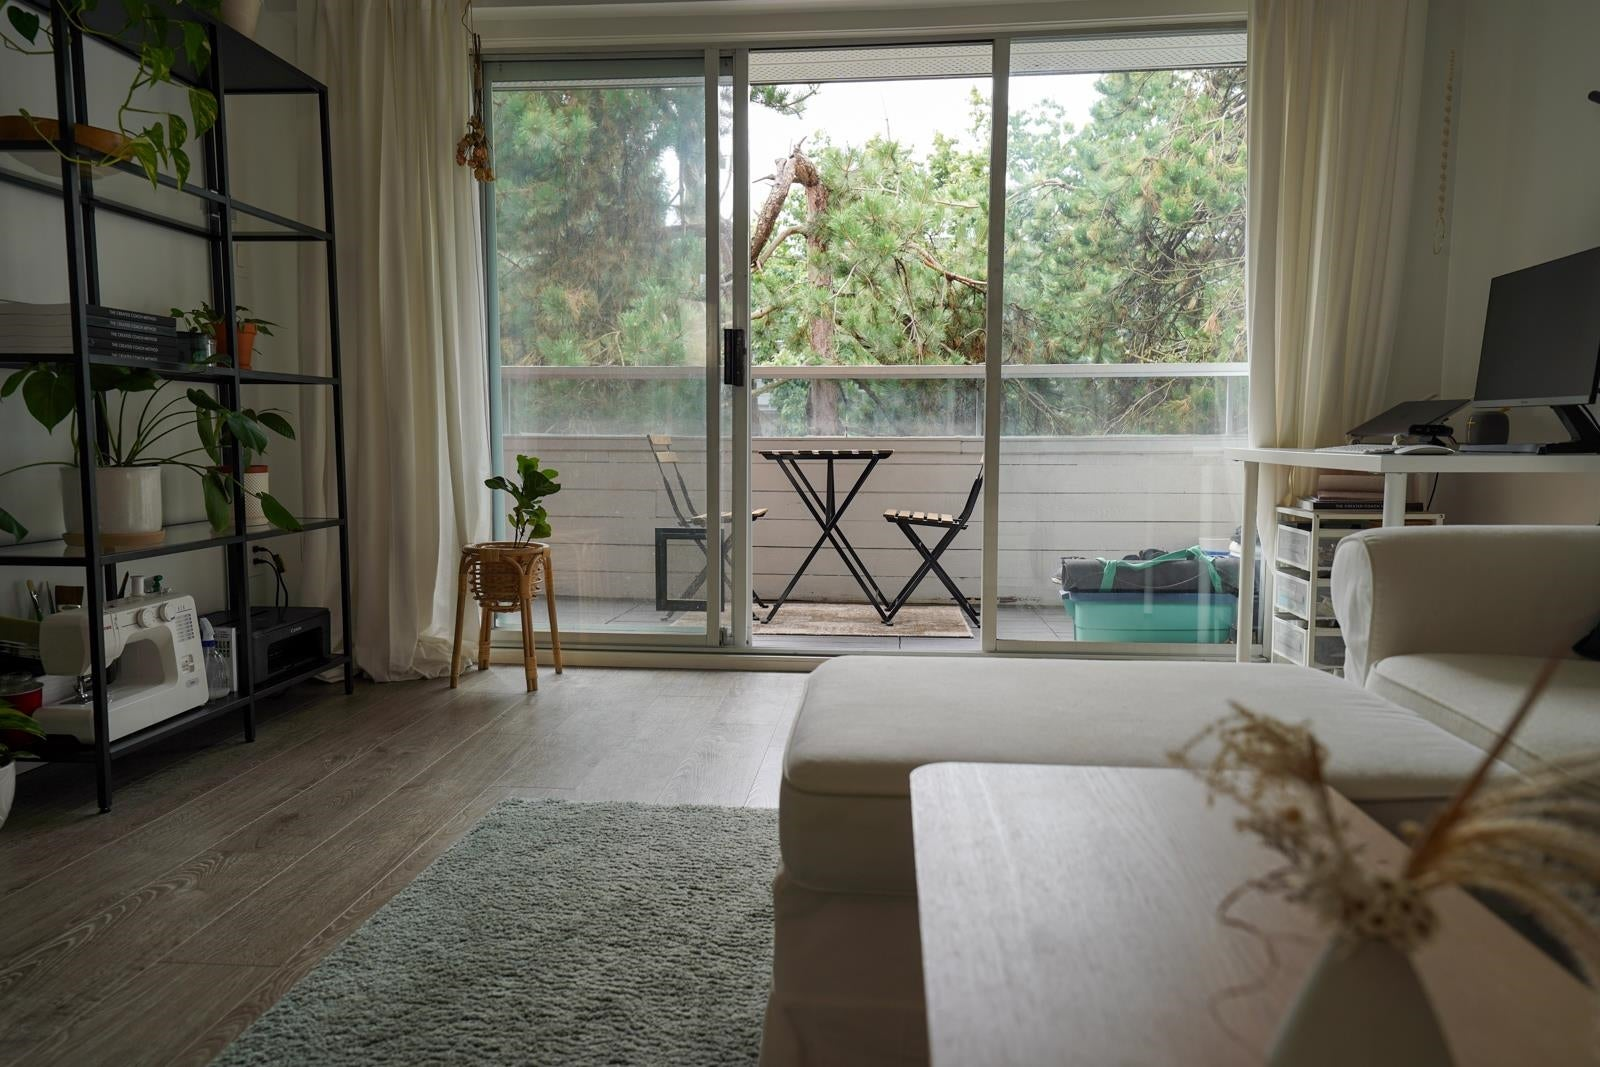 311 250 W 1ST STREET - Lower Lonsdale Apartment/Condo for sale, 1 Bedroom (R2619142) - #7